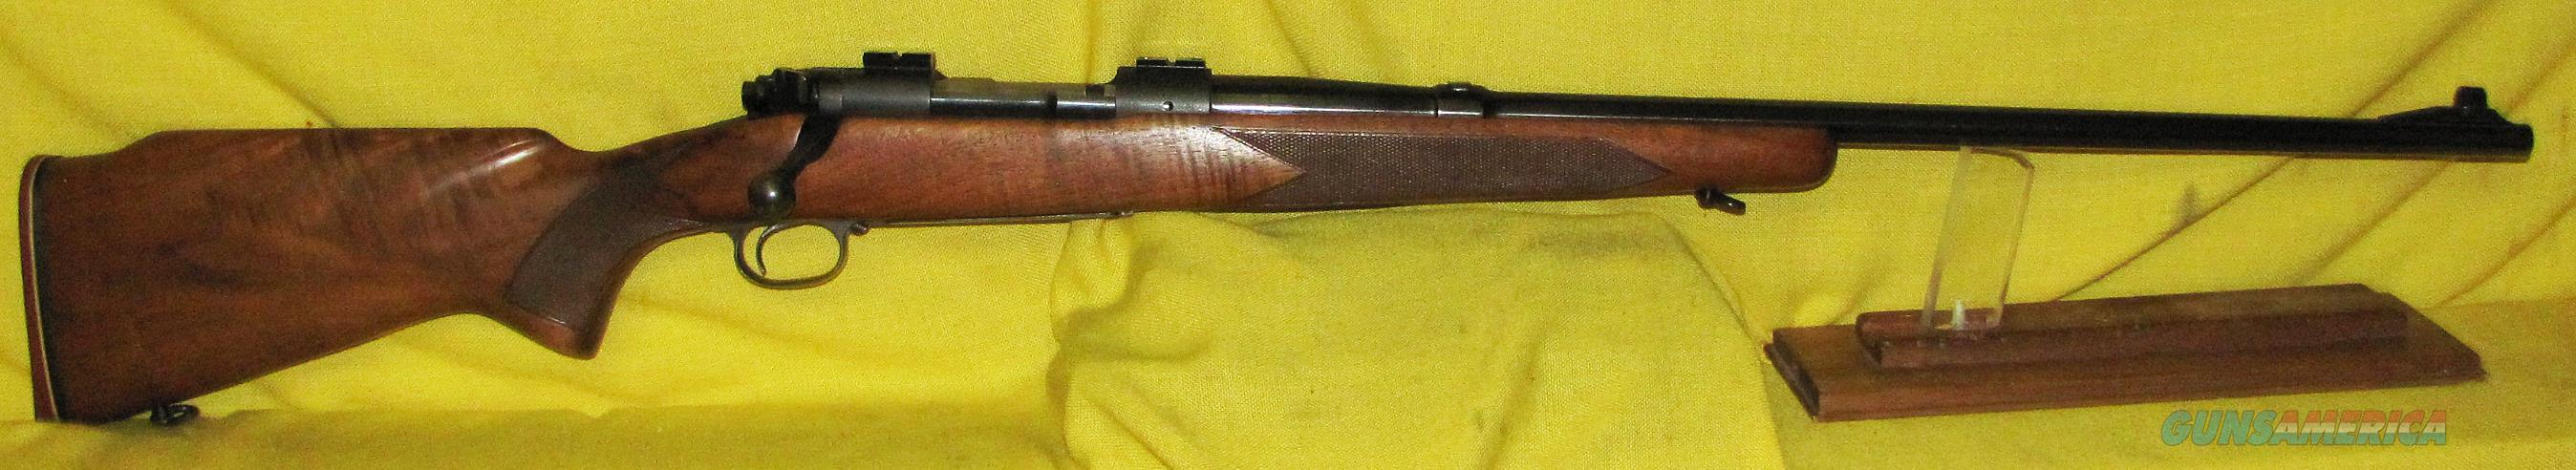 WINCHESTER 70  Guns > Rifles > Winchester Rifles - Modern Bolt/Auto/Single > Model 70 > Pre-64